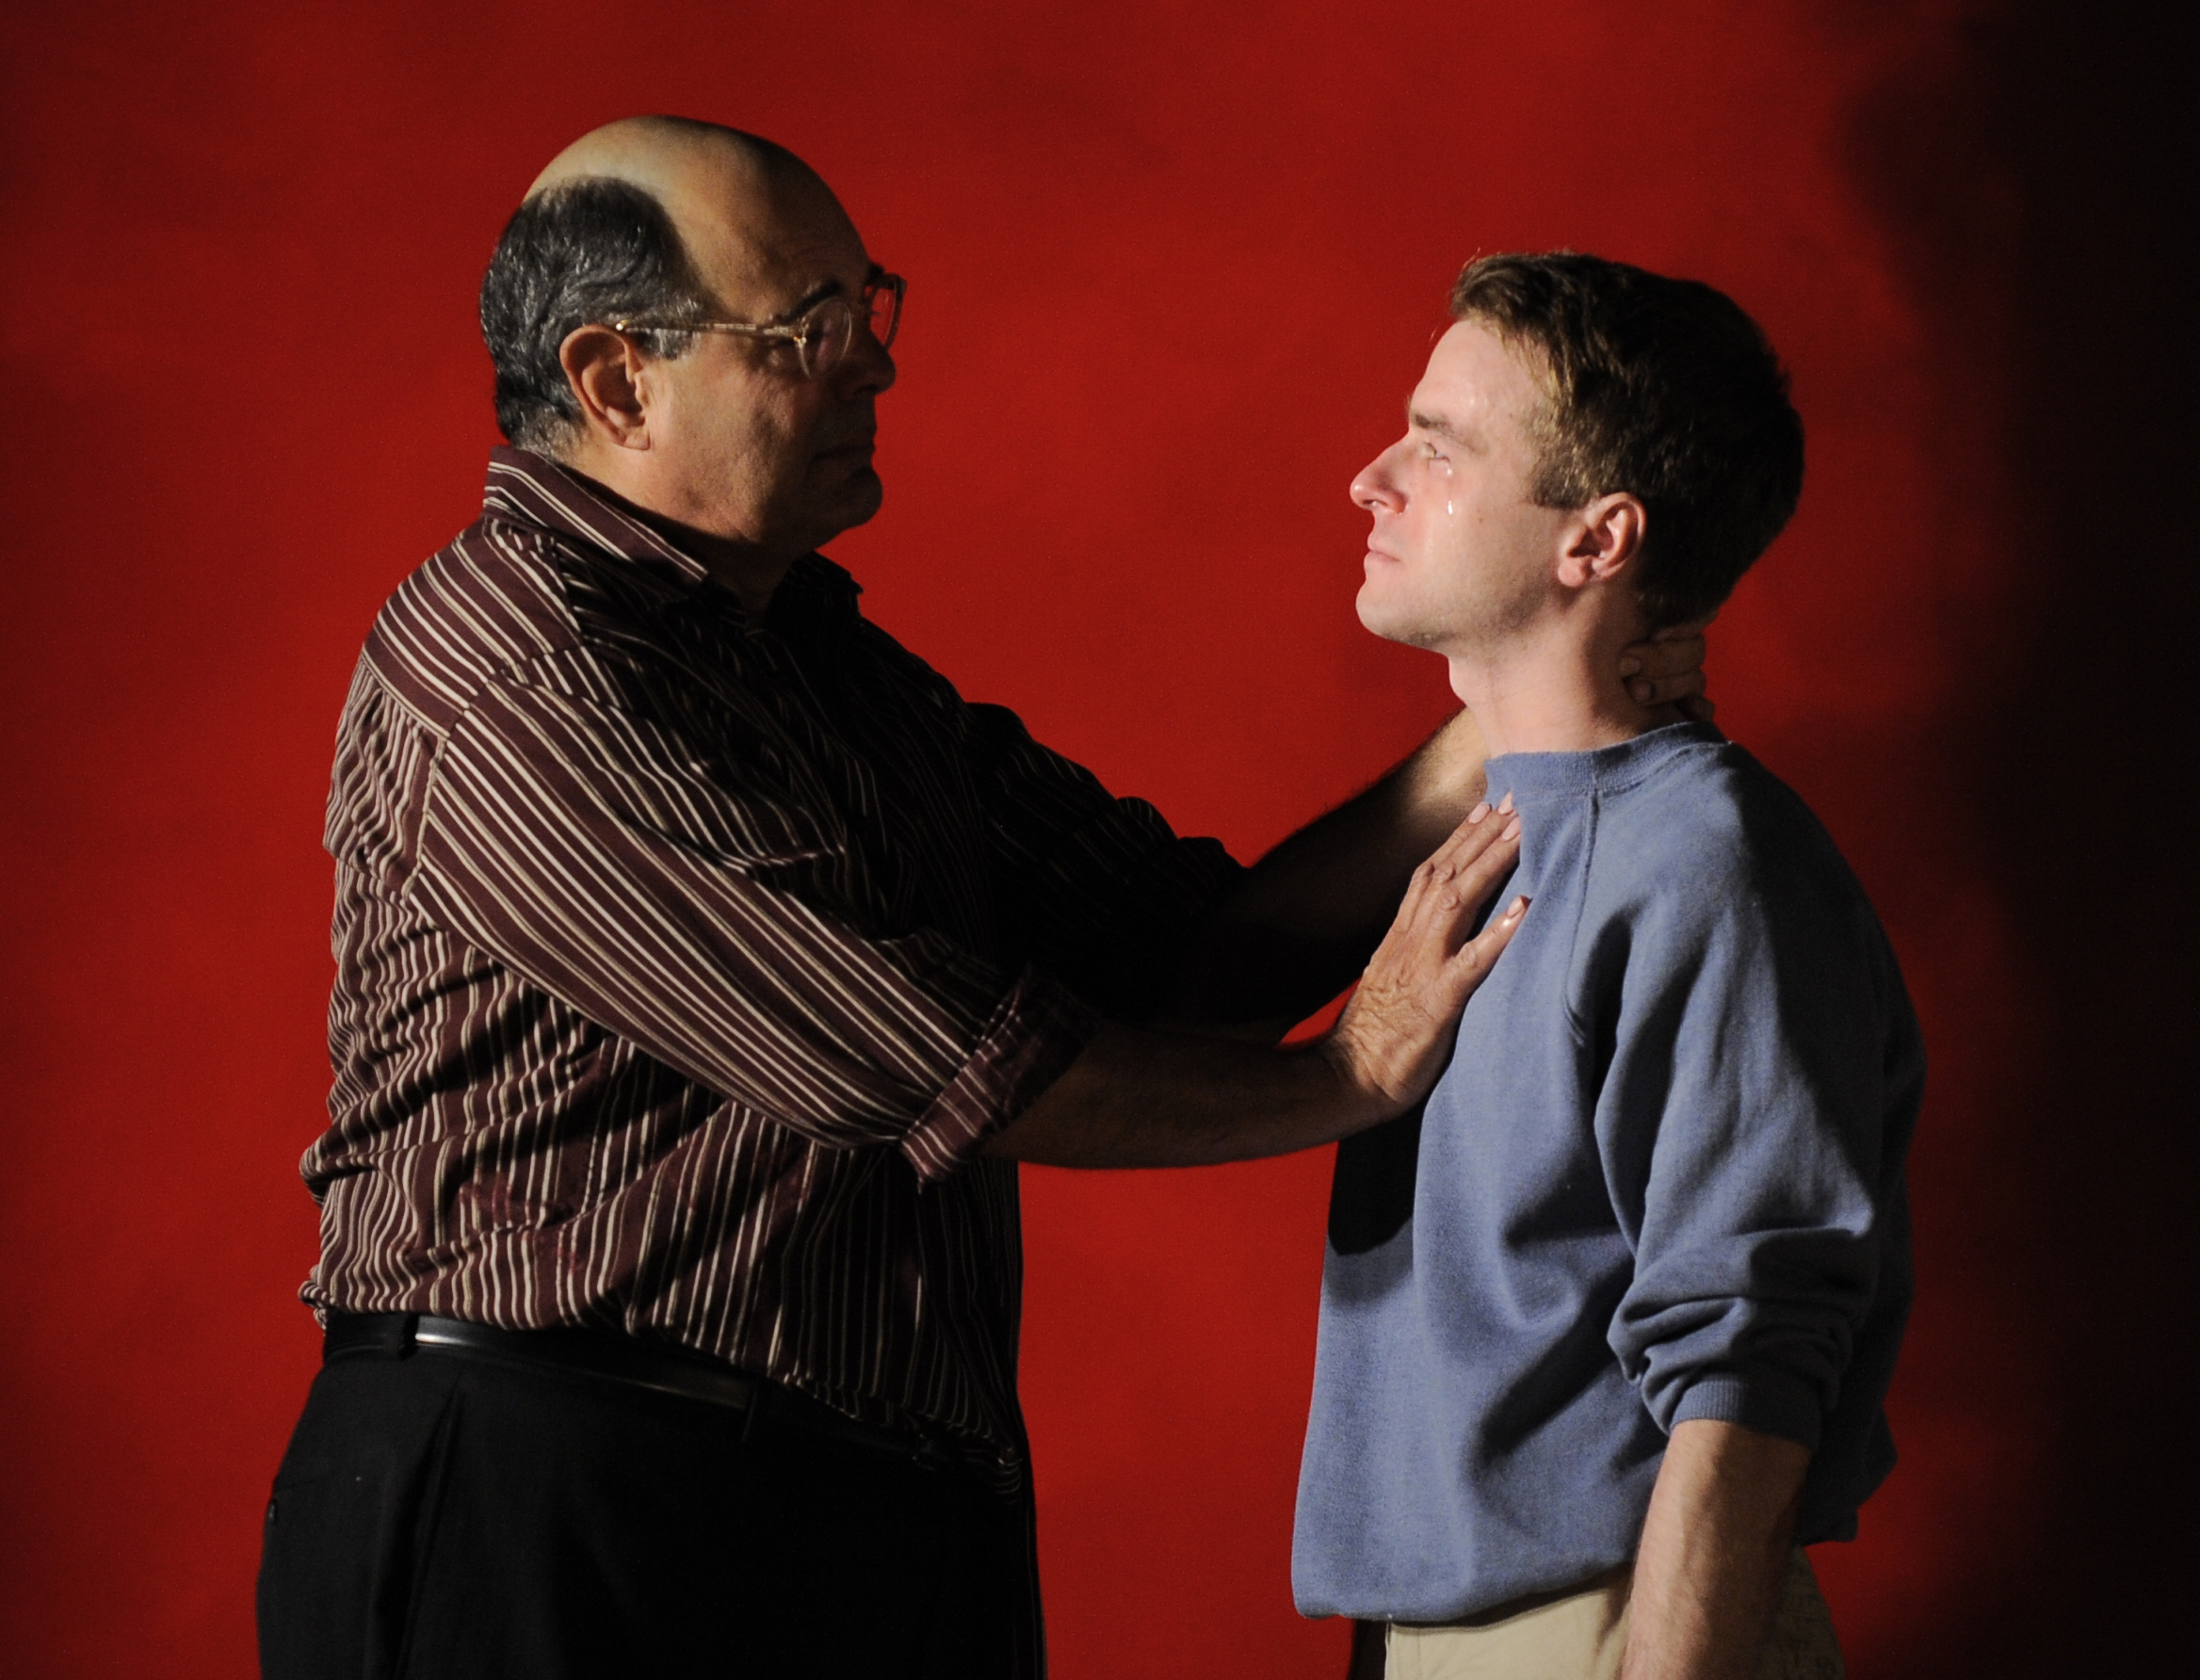 Edward Gero as Mark Rothko and Patrick Andrews as Ken in the 2011 Goodman Theatre production of Red. Directed by Robert Falls. Photo by Liz Lauren.